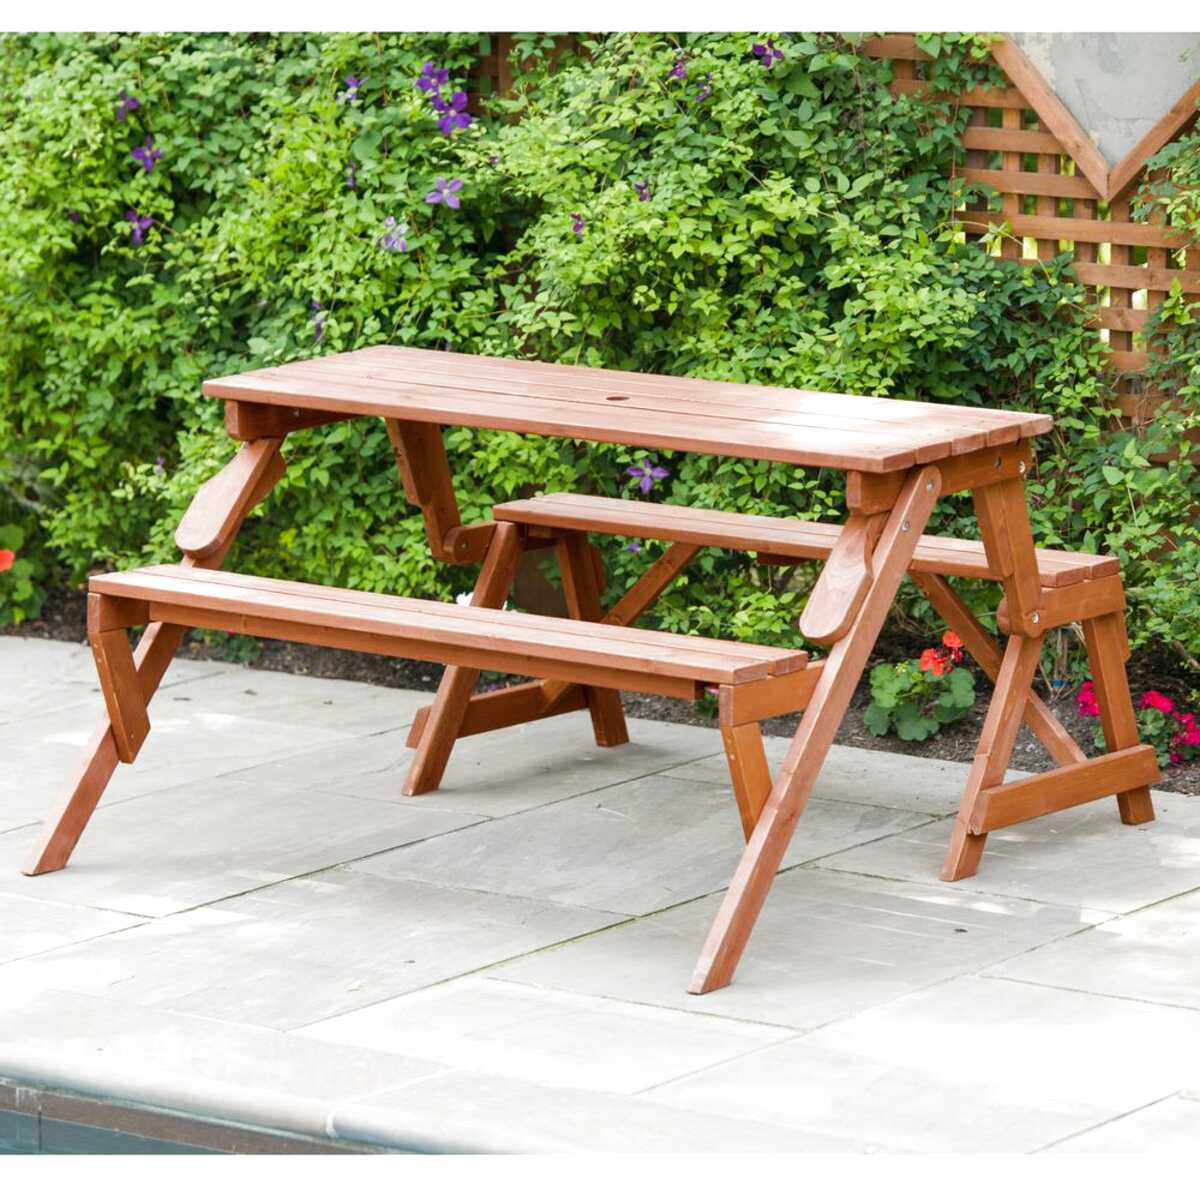 Wooden Folding Picnic Table For Sale In Uk View 69 Ads